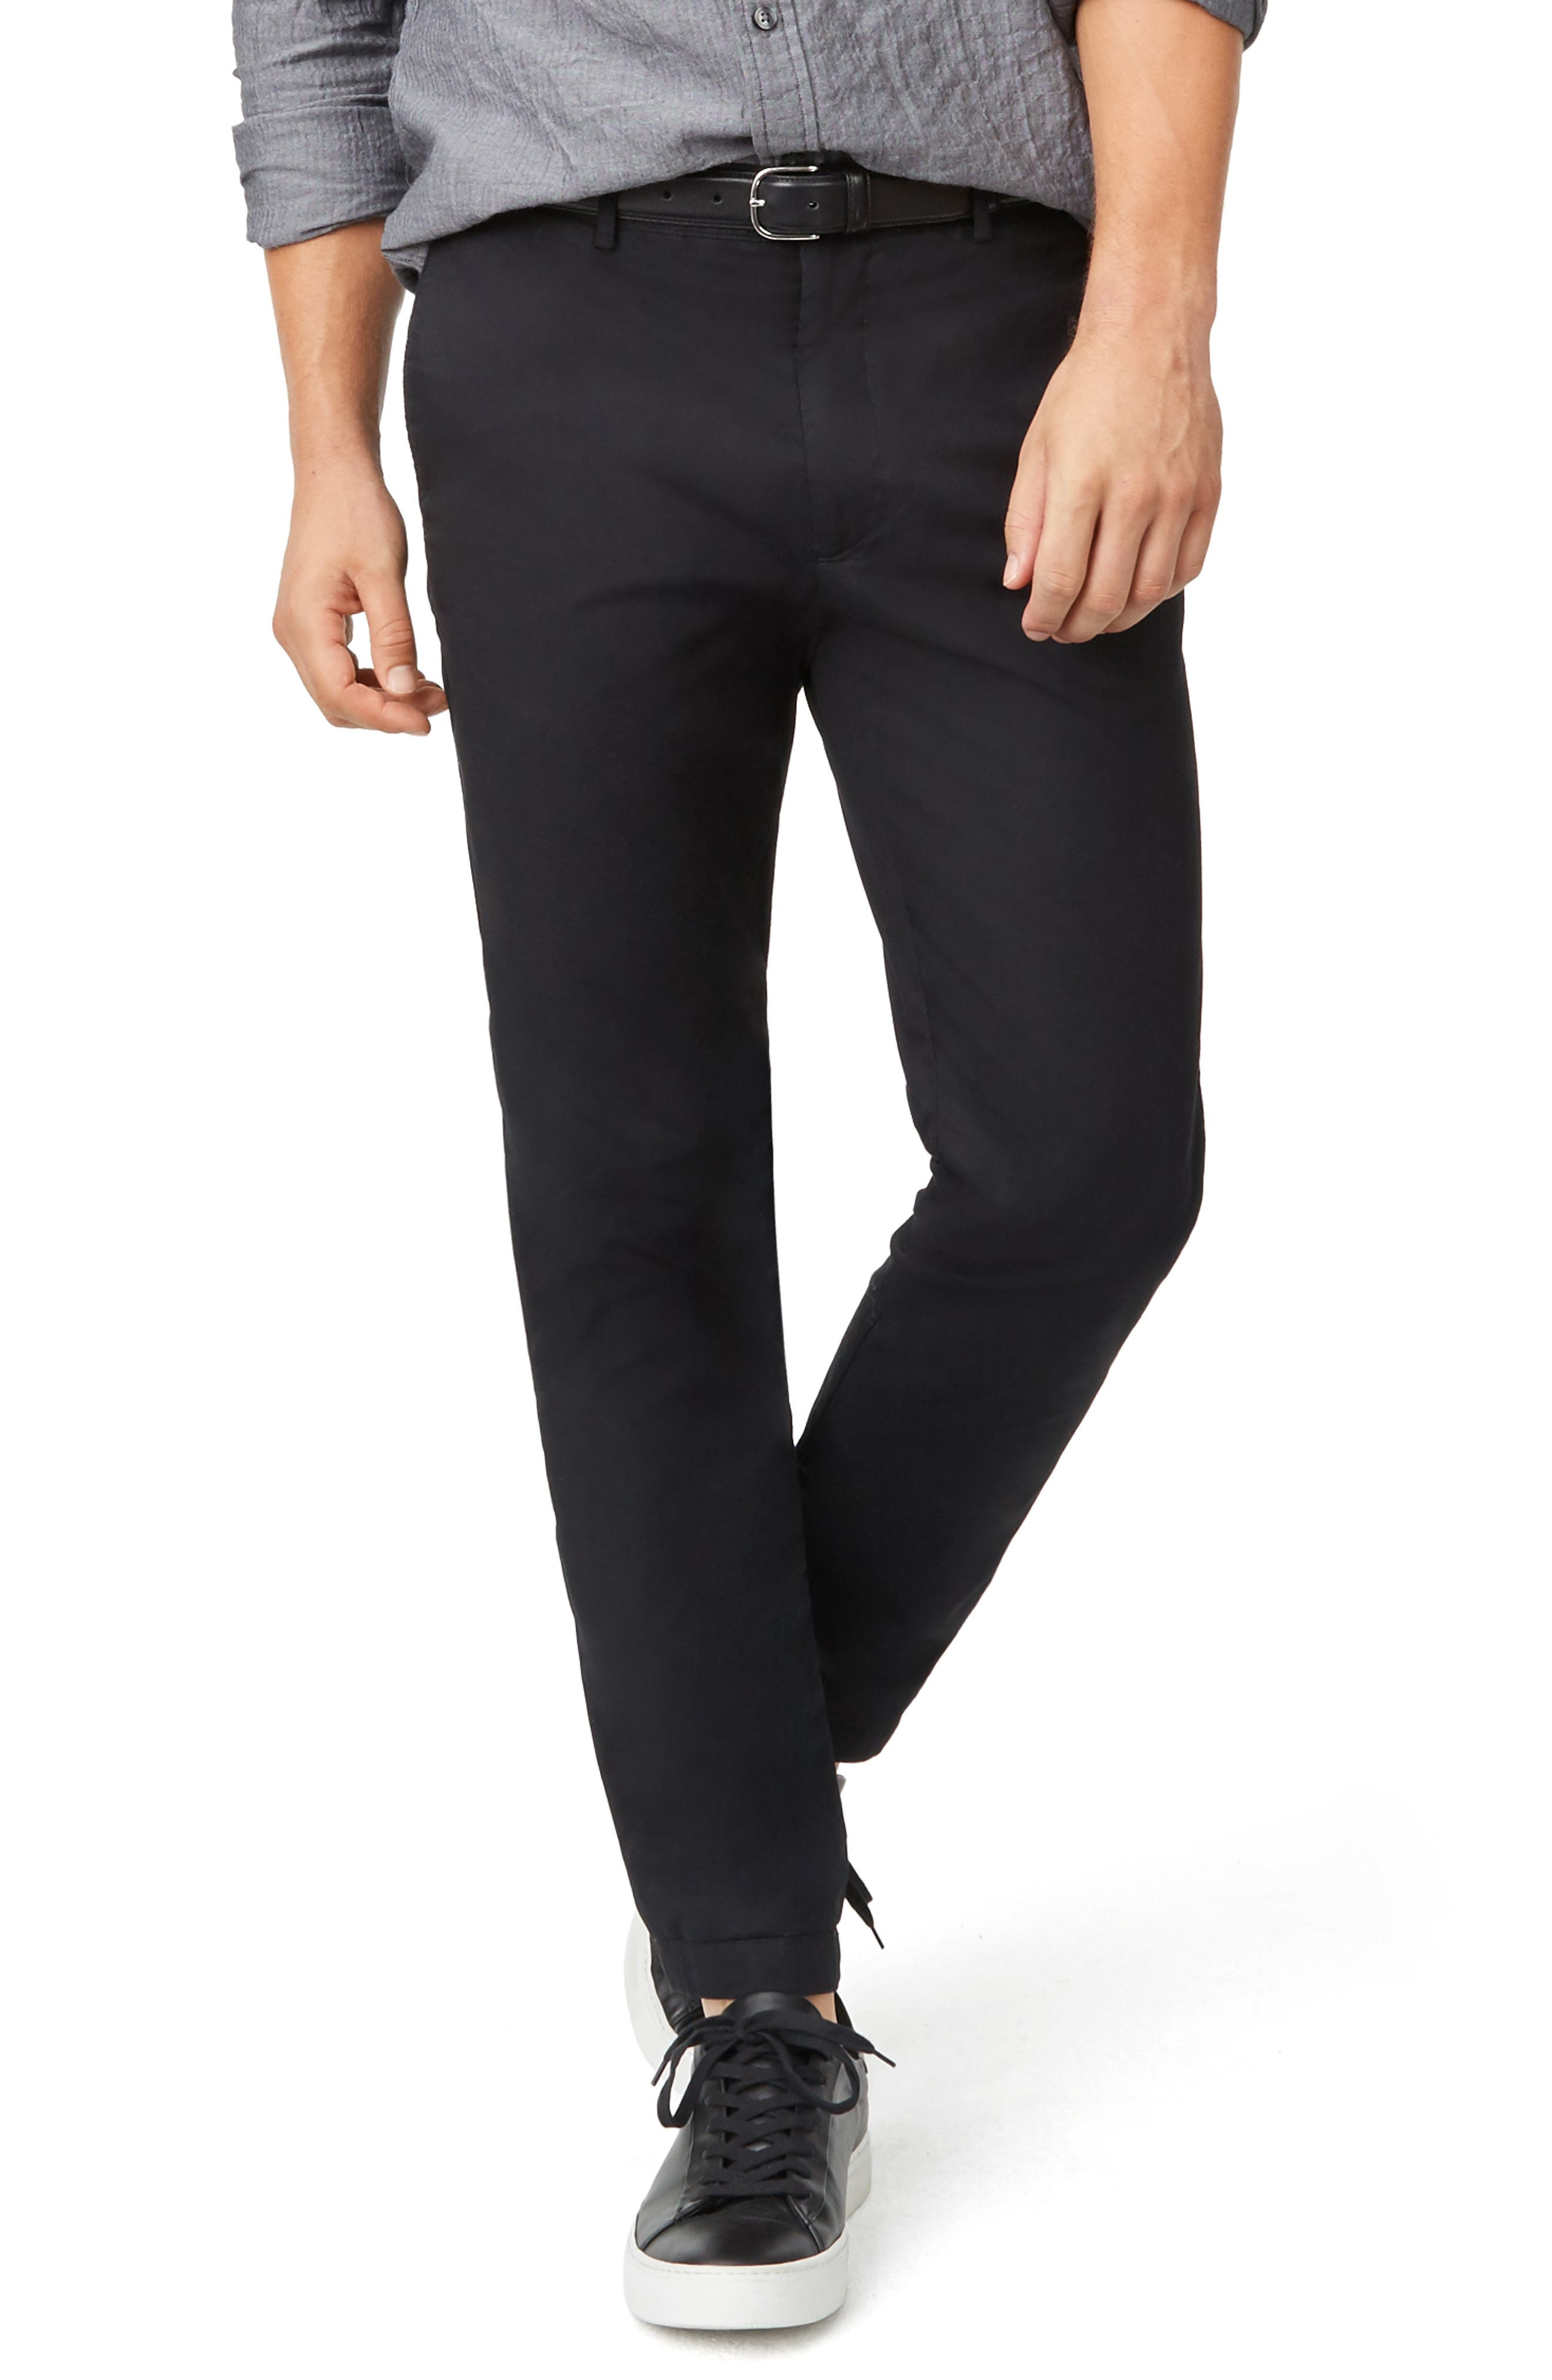 Connor Trim Fit Stretch Cotton Chino Pants by Club Monaco